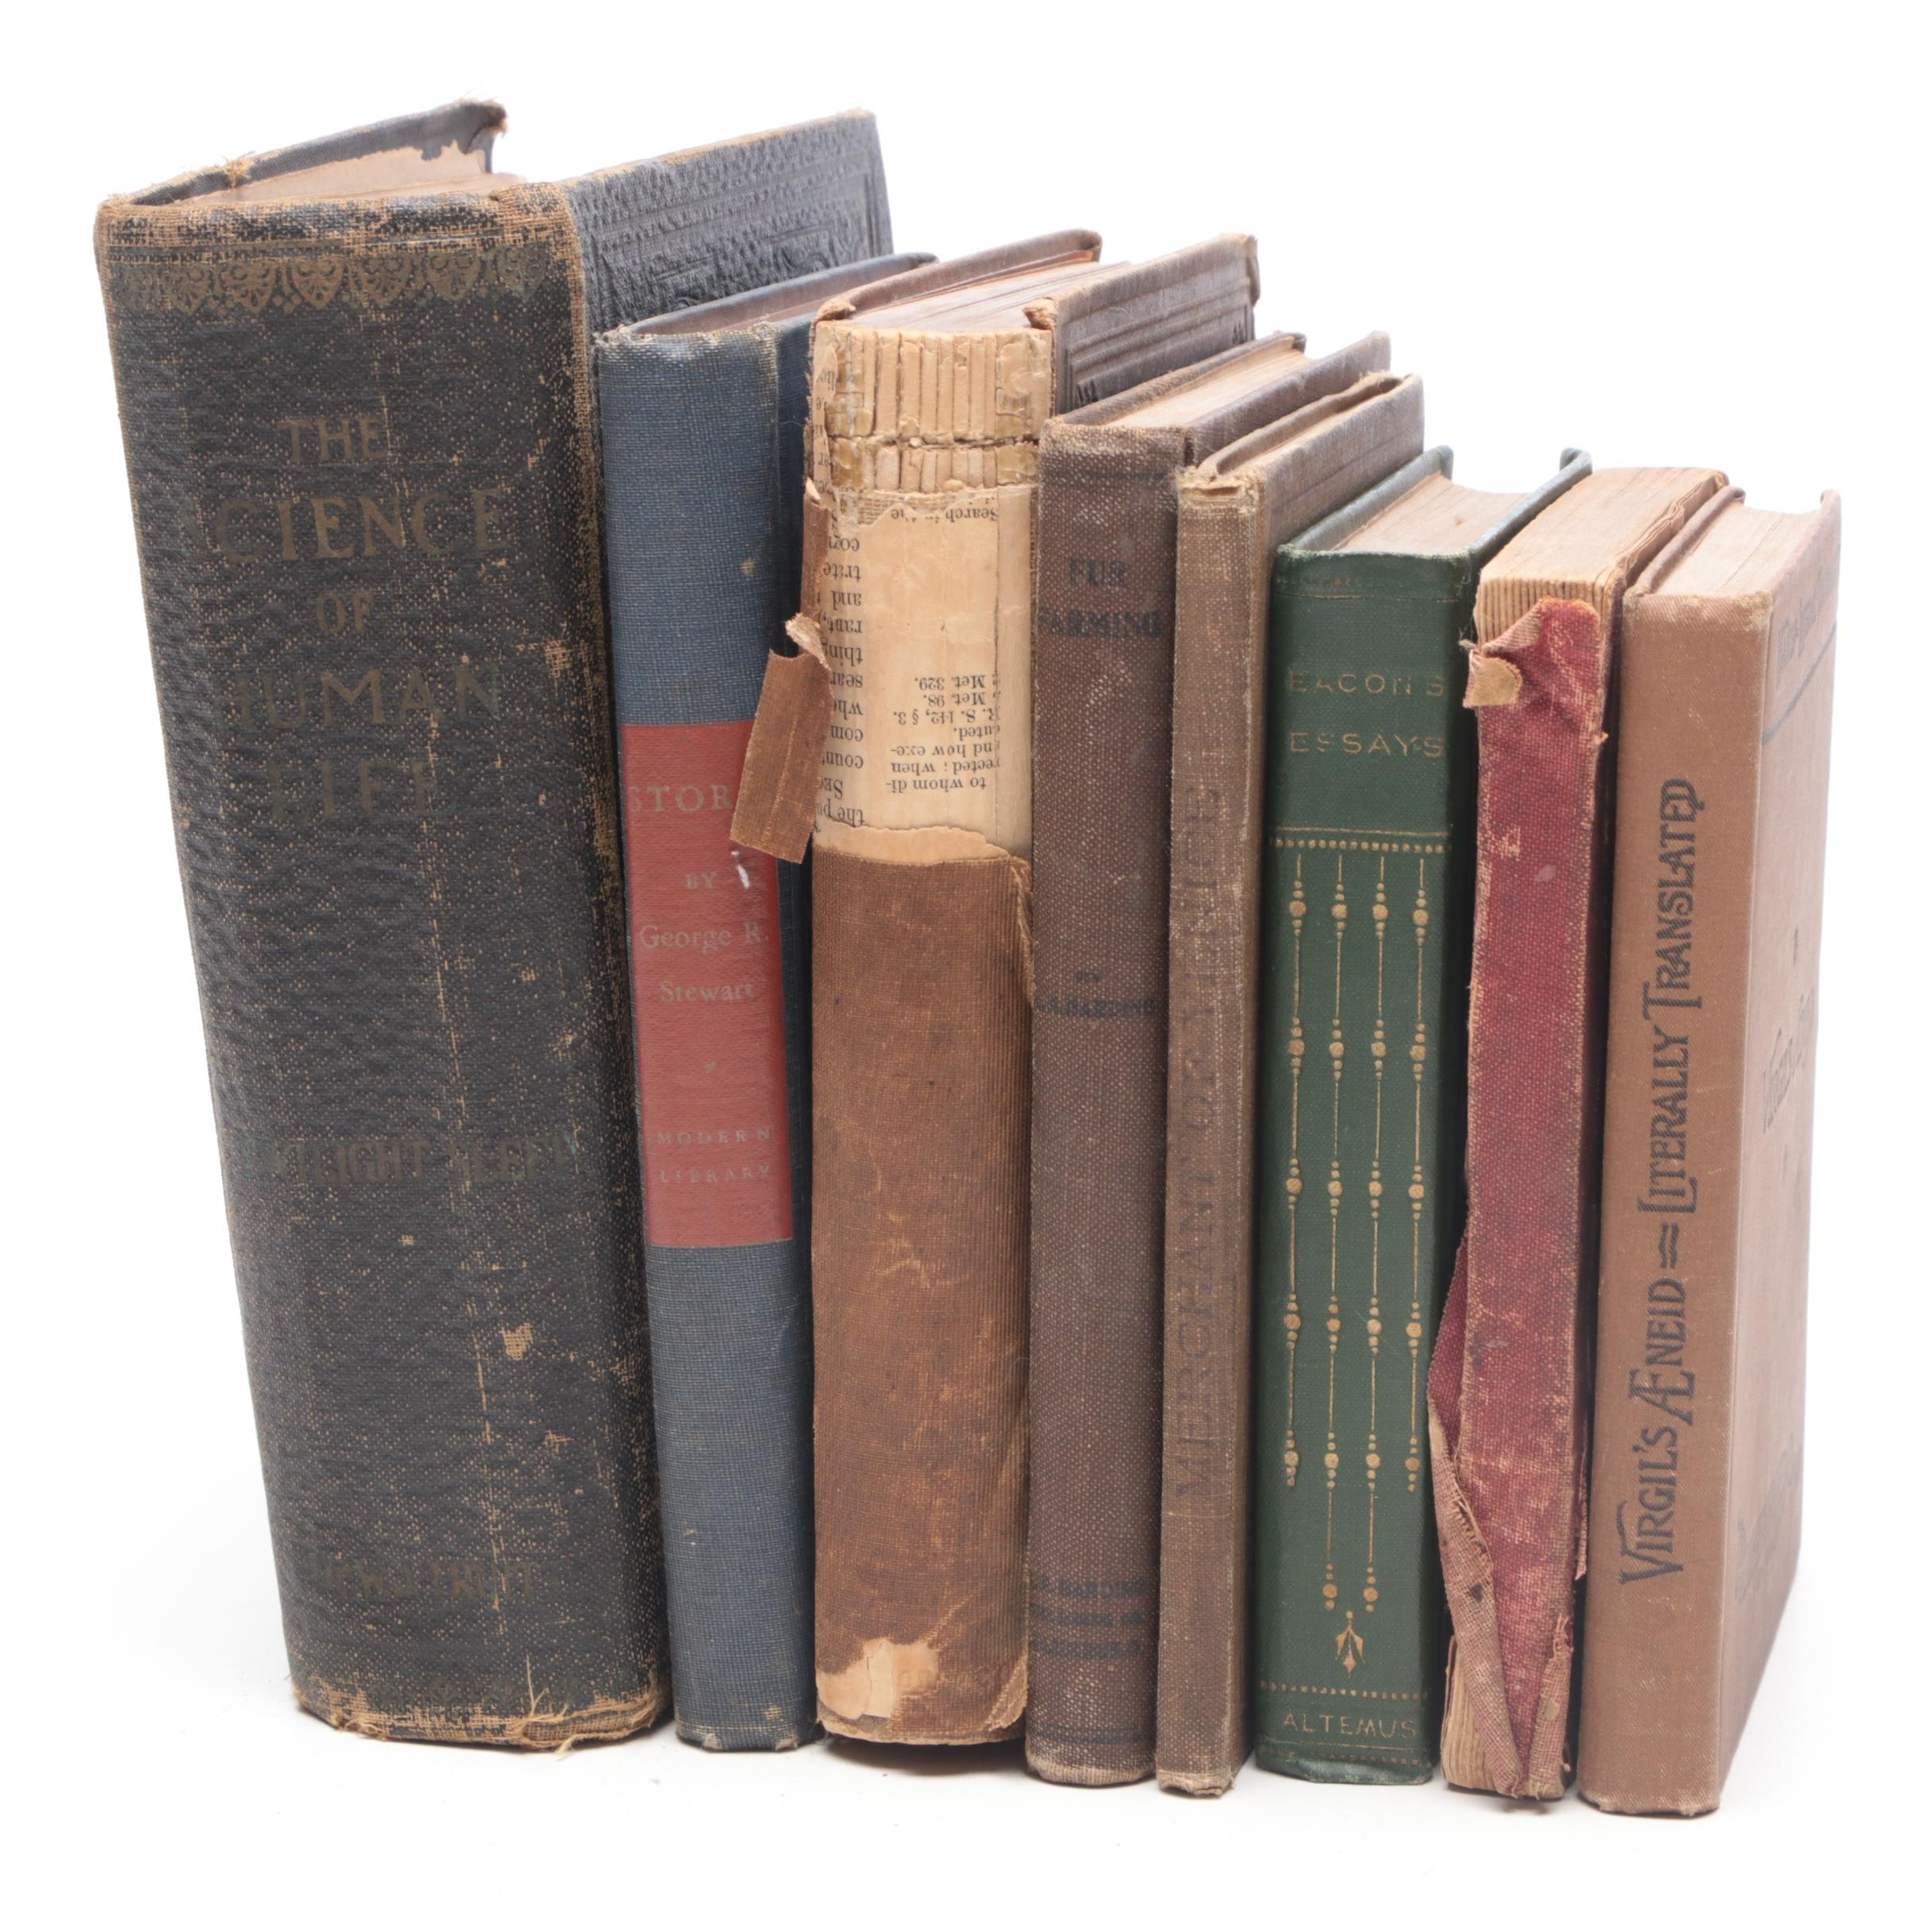 Group of Vintage and Antique Hardcover Books